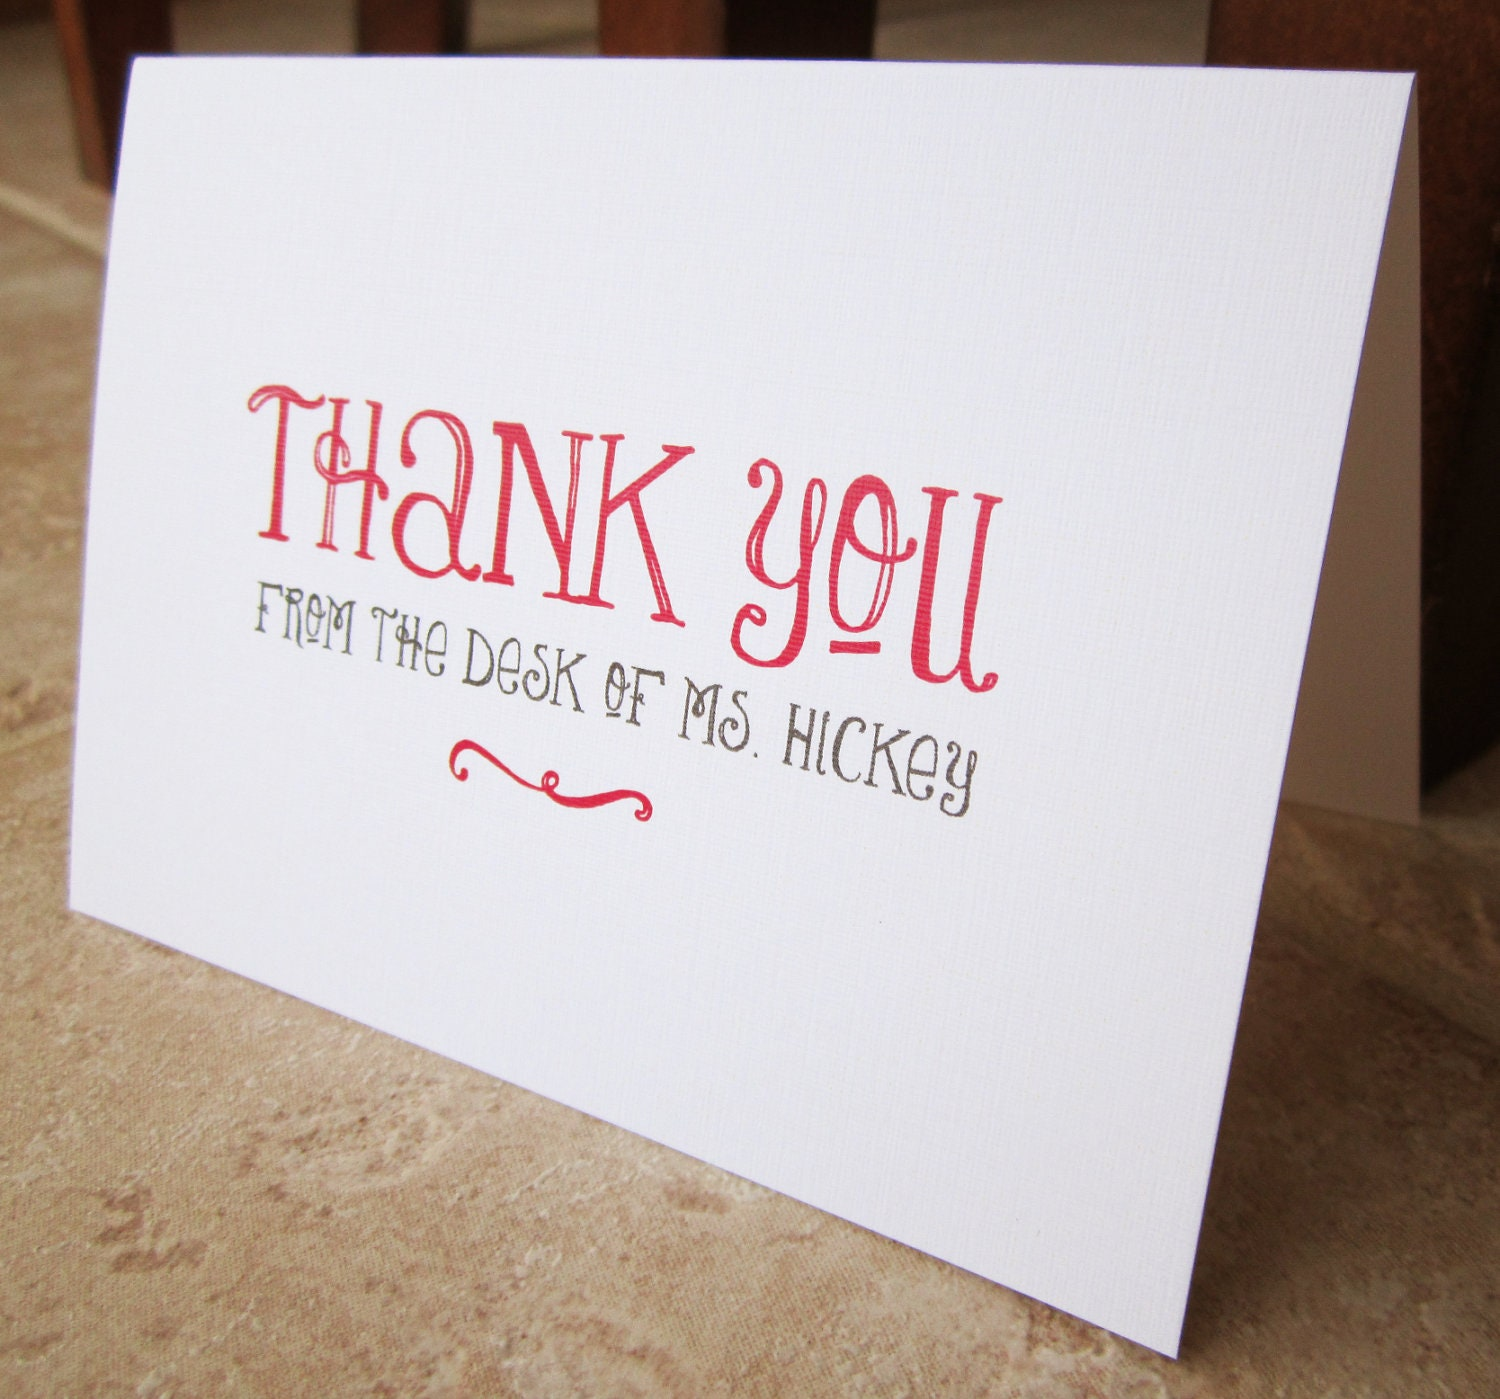 Personalized Stationery Gifts for Teacher Boss Friend